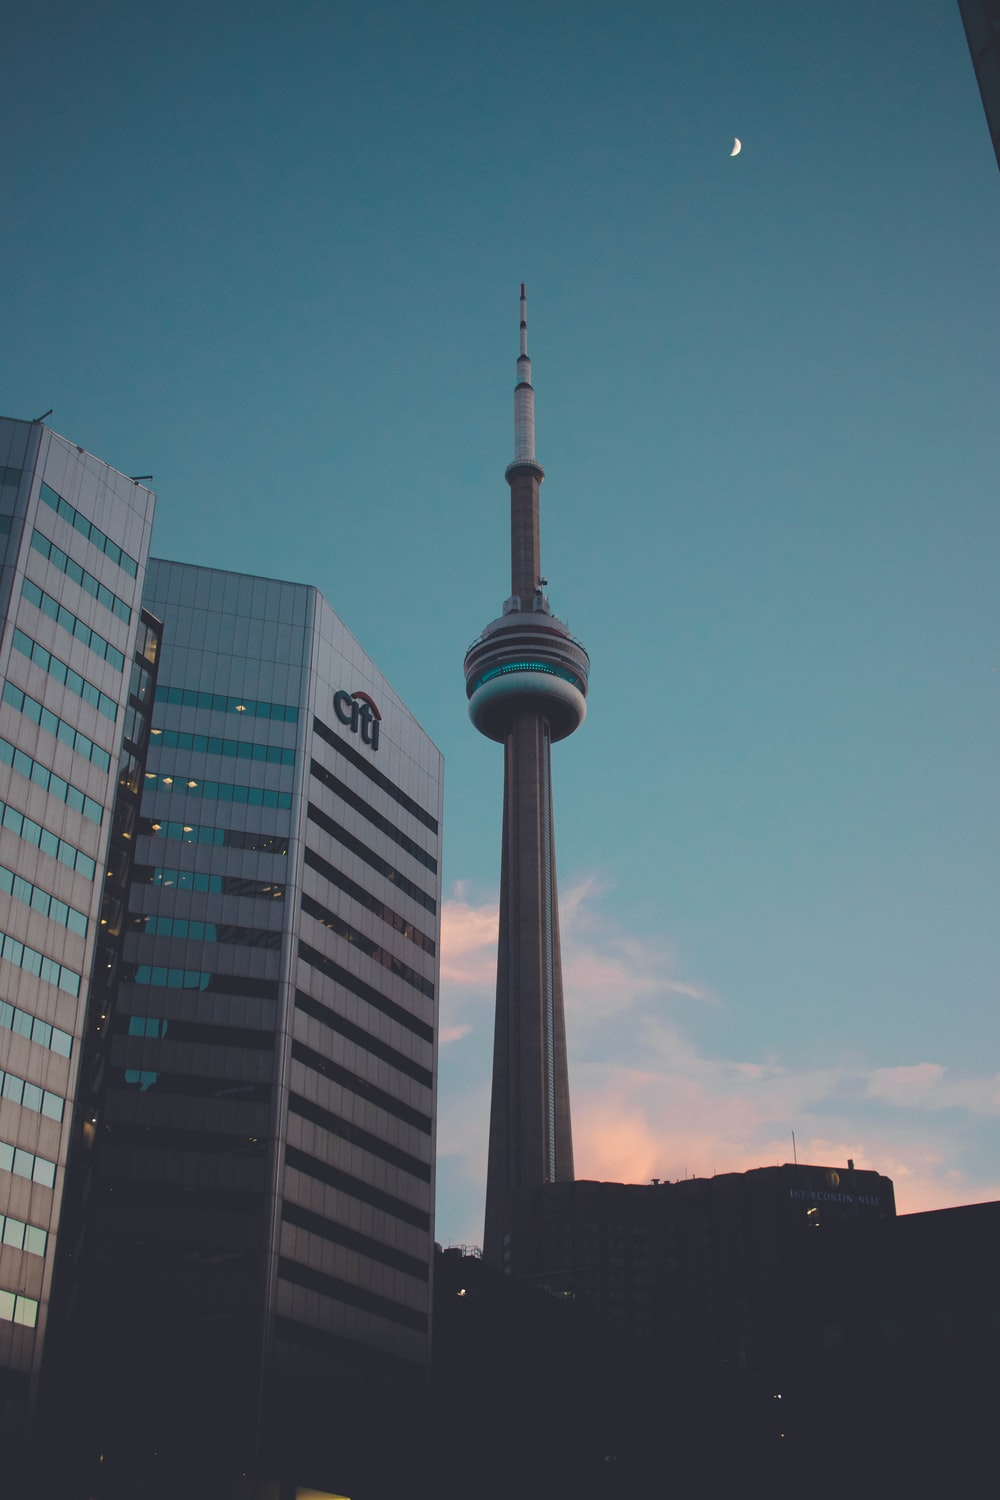 CN Tower by Citi building